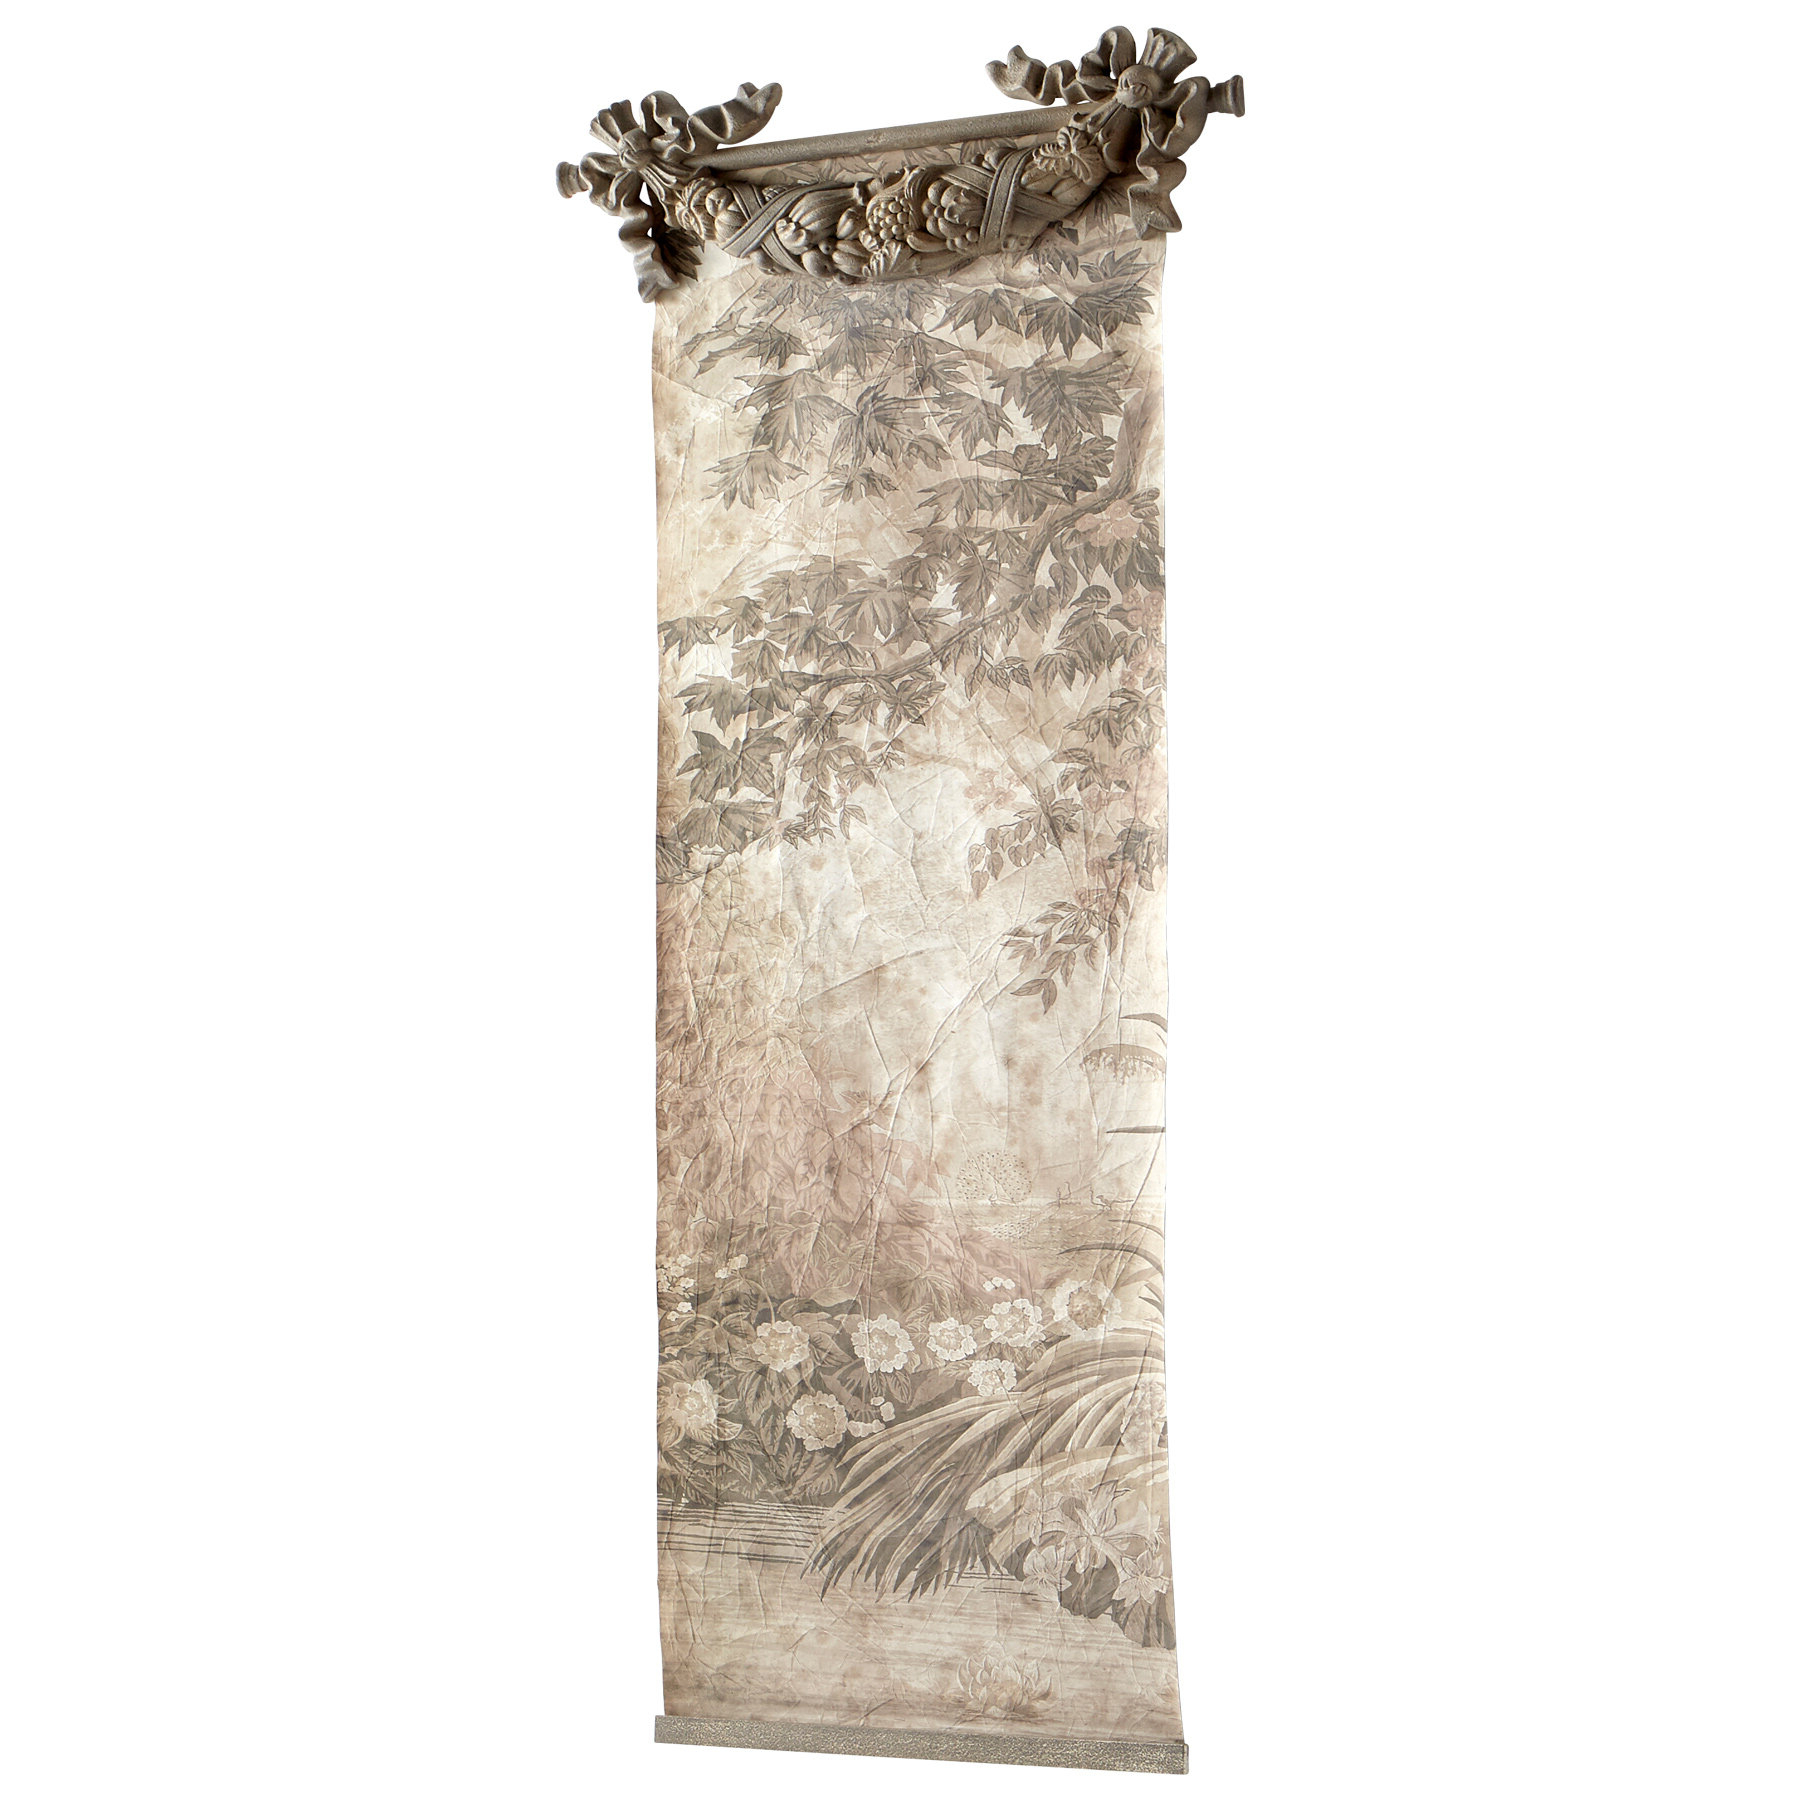 Blended Fabric Hidden Garden Chinoiserie Wall Hanging With Rod With Regard To Fashionable Blended Fabric Wall Hangings With Rod Included (View 12 of 20)